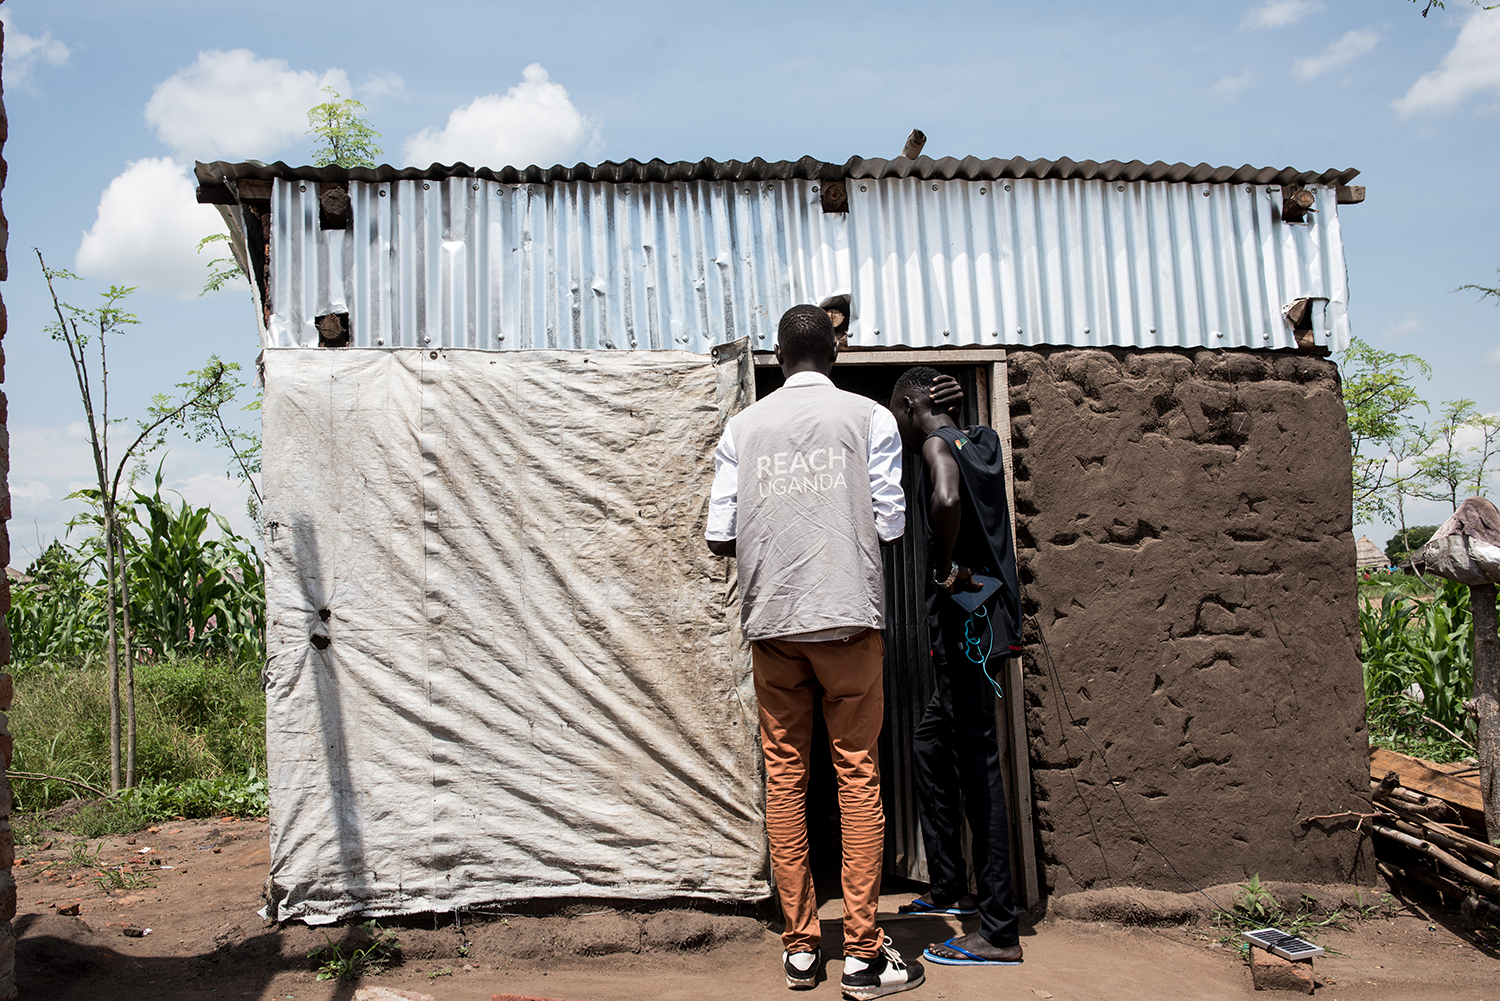 REACH staff gather data on the needs and services of refugees living in Uganda. (© Christian Jepsen 2018)